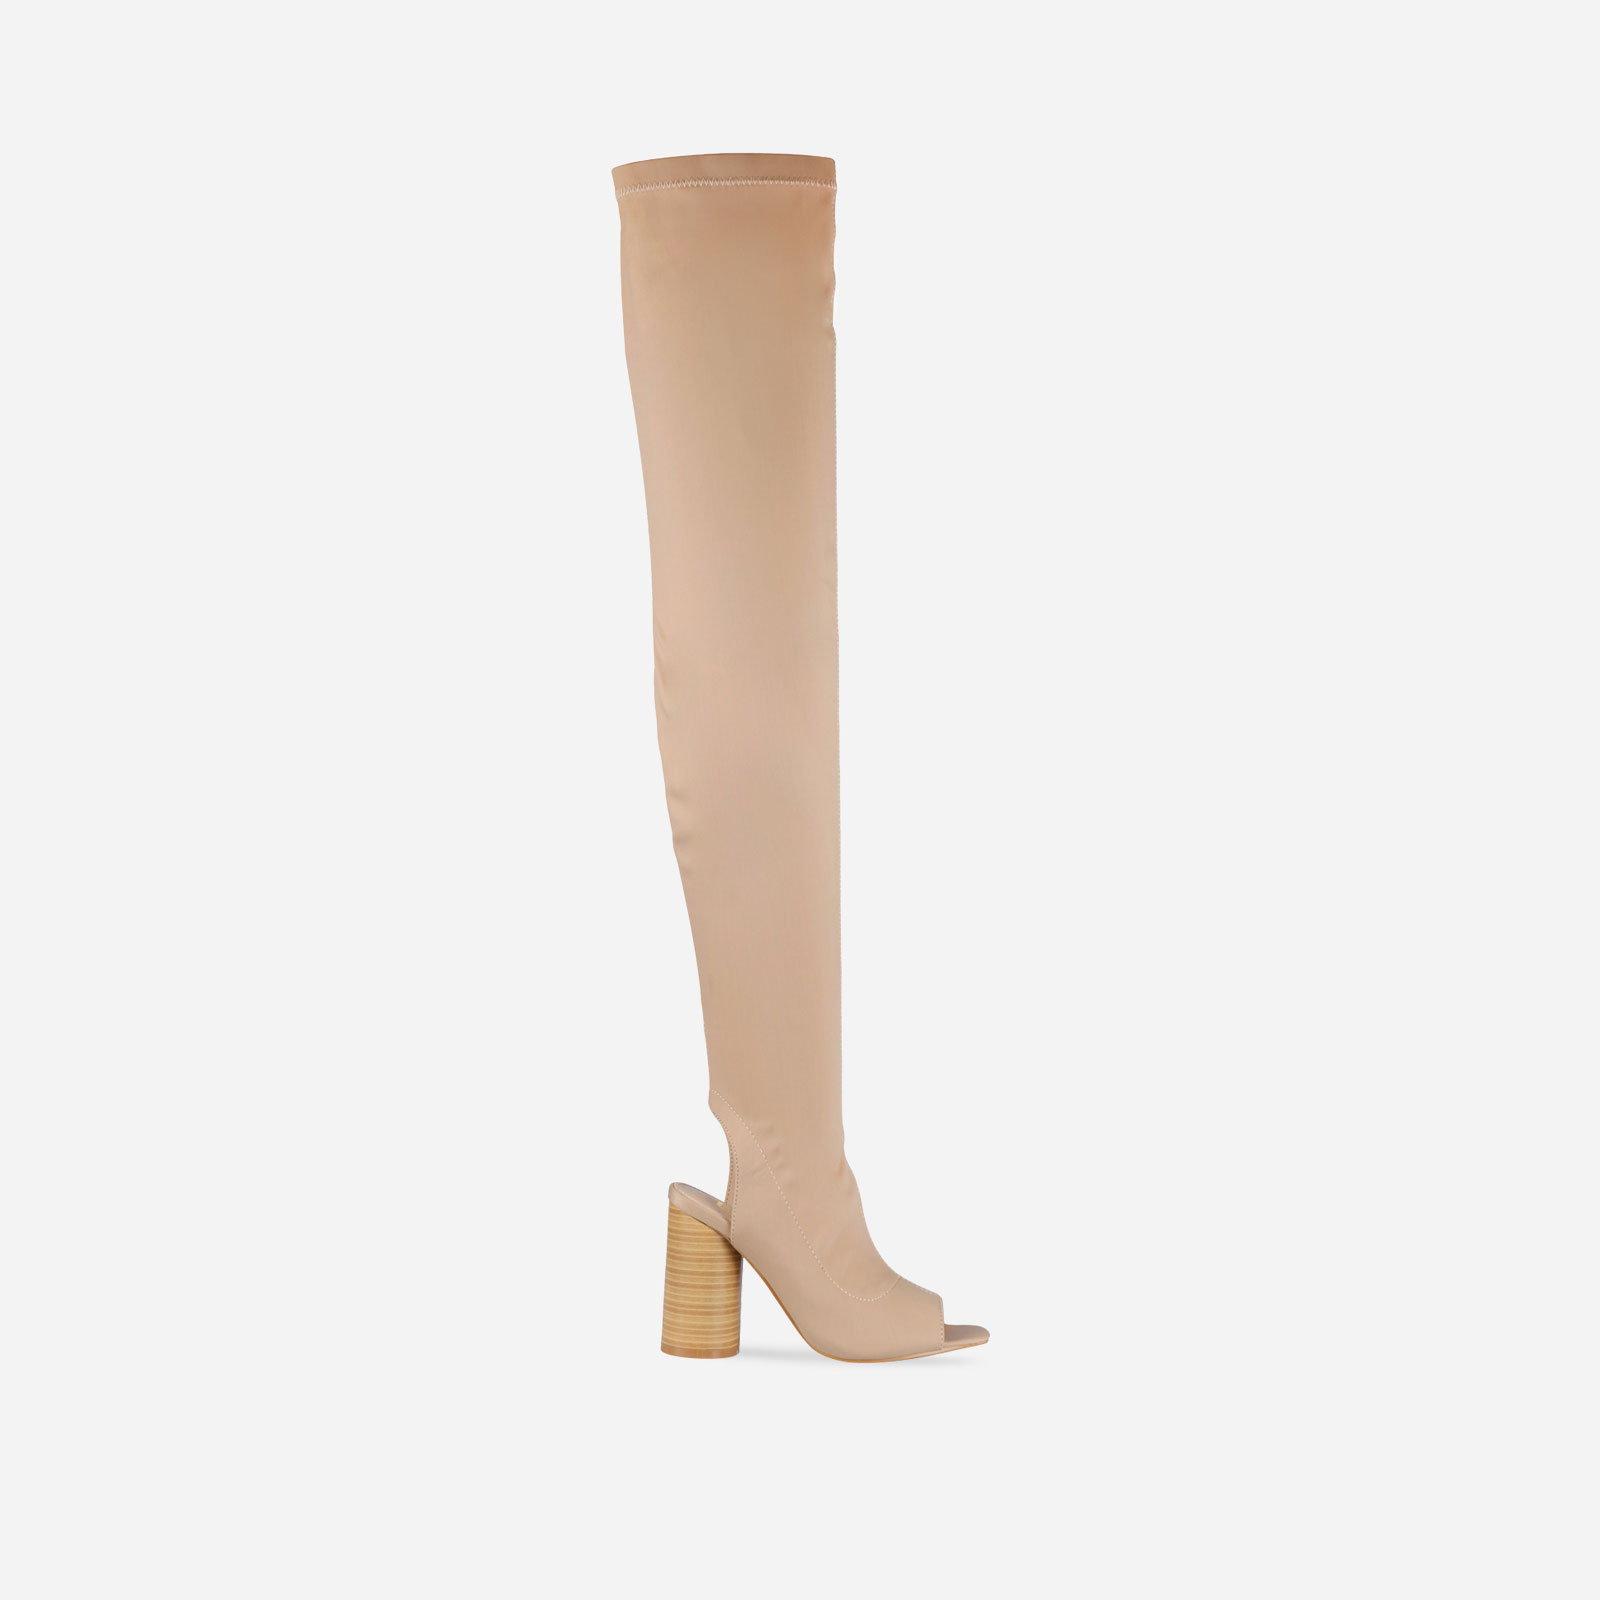 Layla Peep Toe Over the Knee Boot In Nude Lycra Image 1